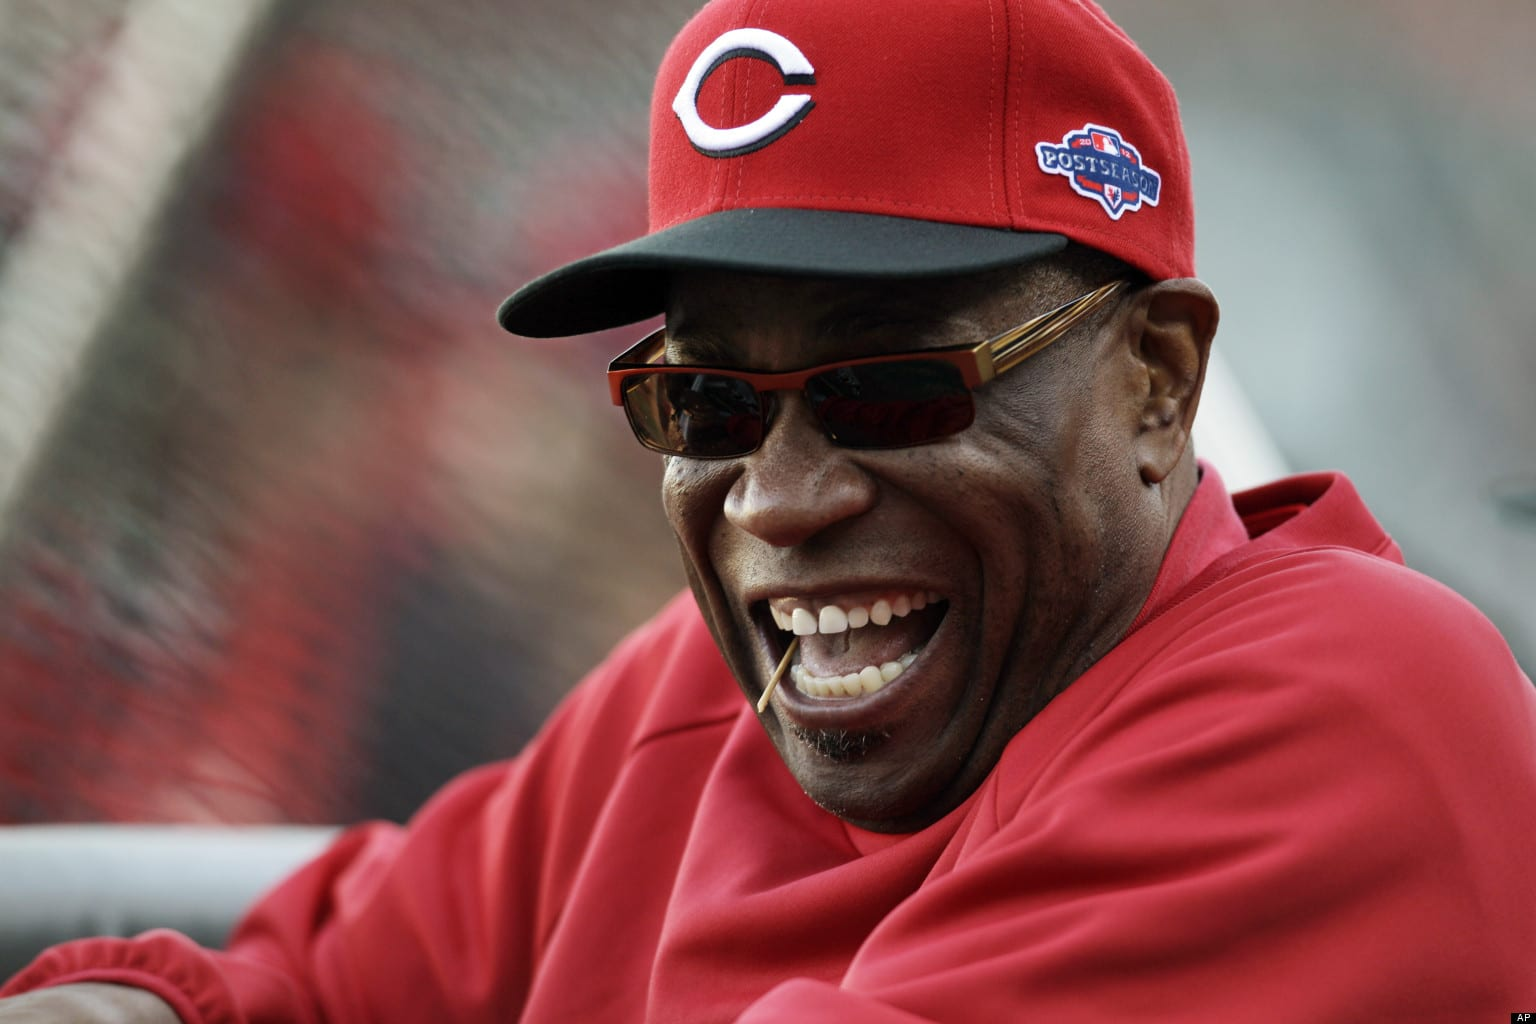 Mlb Rumors: Nationals May Hire Dusty Baker As Manager, Not Bud Black